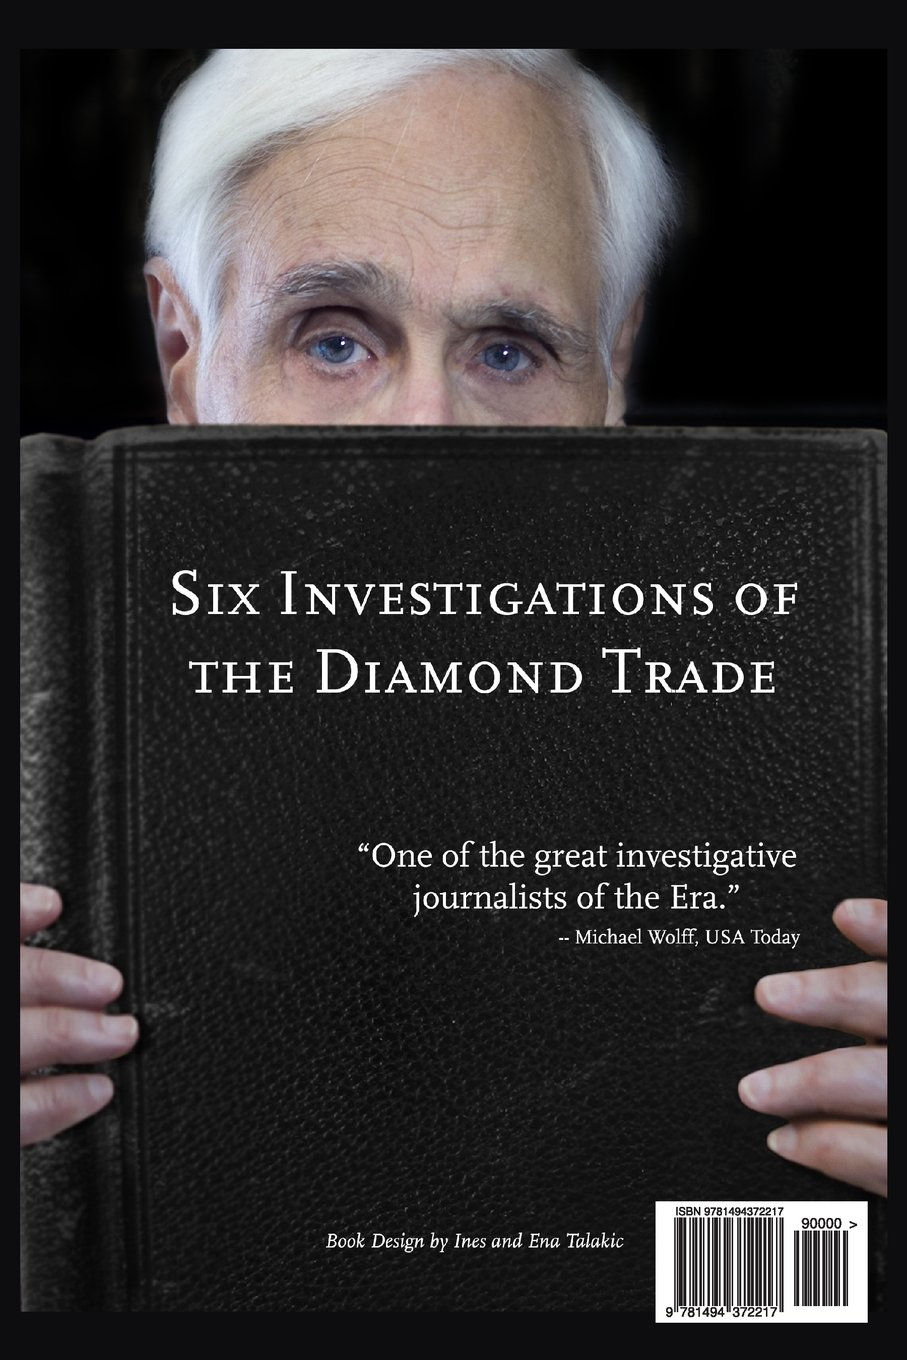 Have You Ever Tried to Sell a Diamond?: And other Investigations of the  Diamond Trade (Short-form Book): Edward Jay Epstein: 9781494372217:  Amazon.com: ...